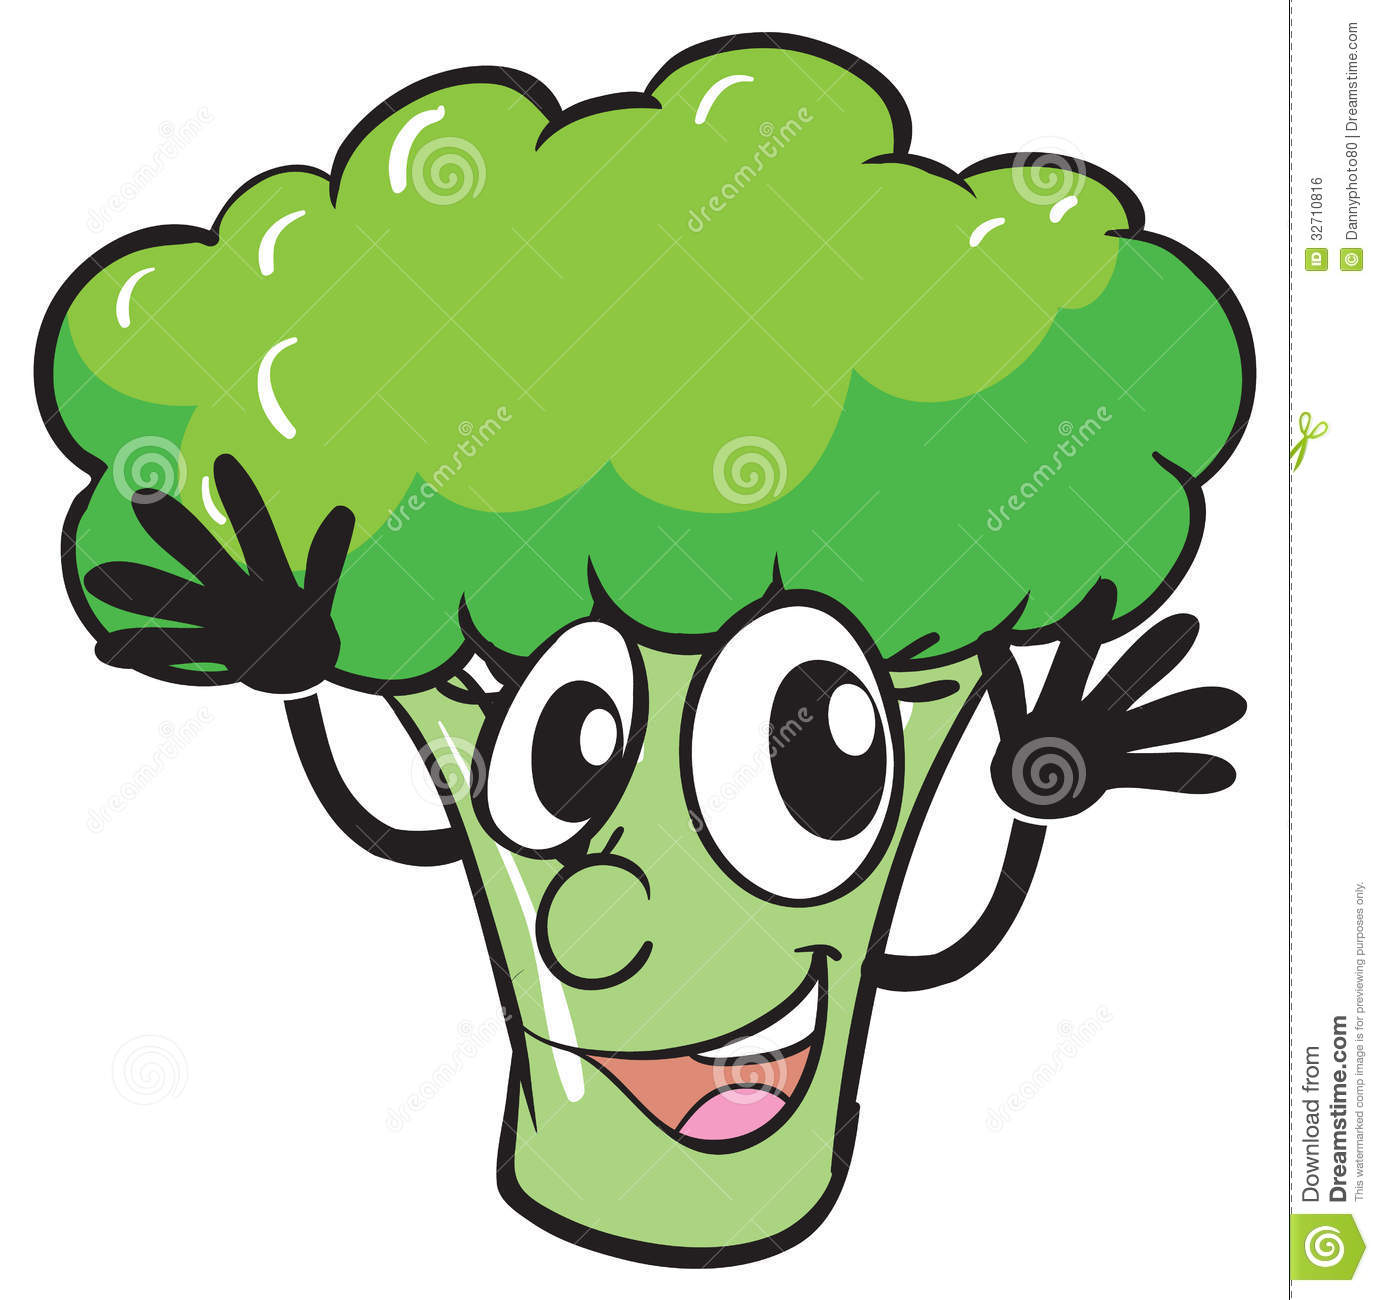 Pencil and in color. Broccoli clipart animated